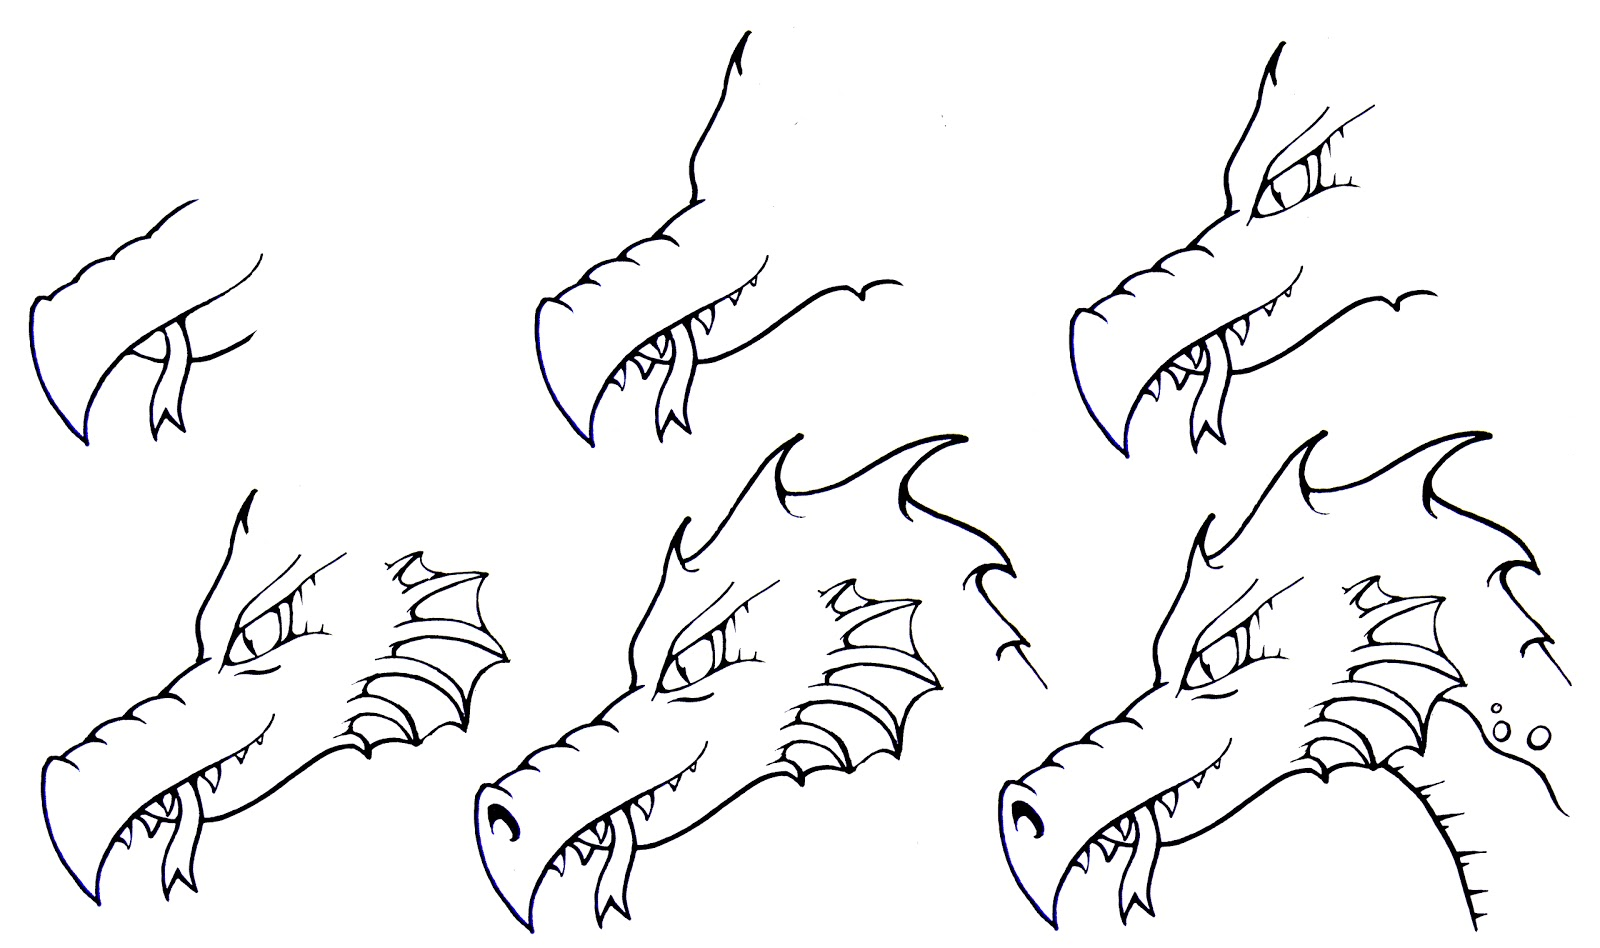 DARYL HOBSON ARTWORK: How To Draw A Dragon: Step By Step